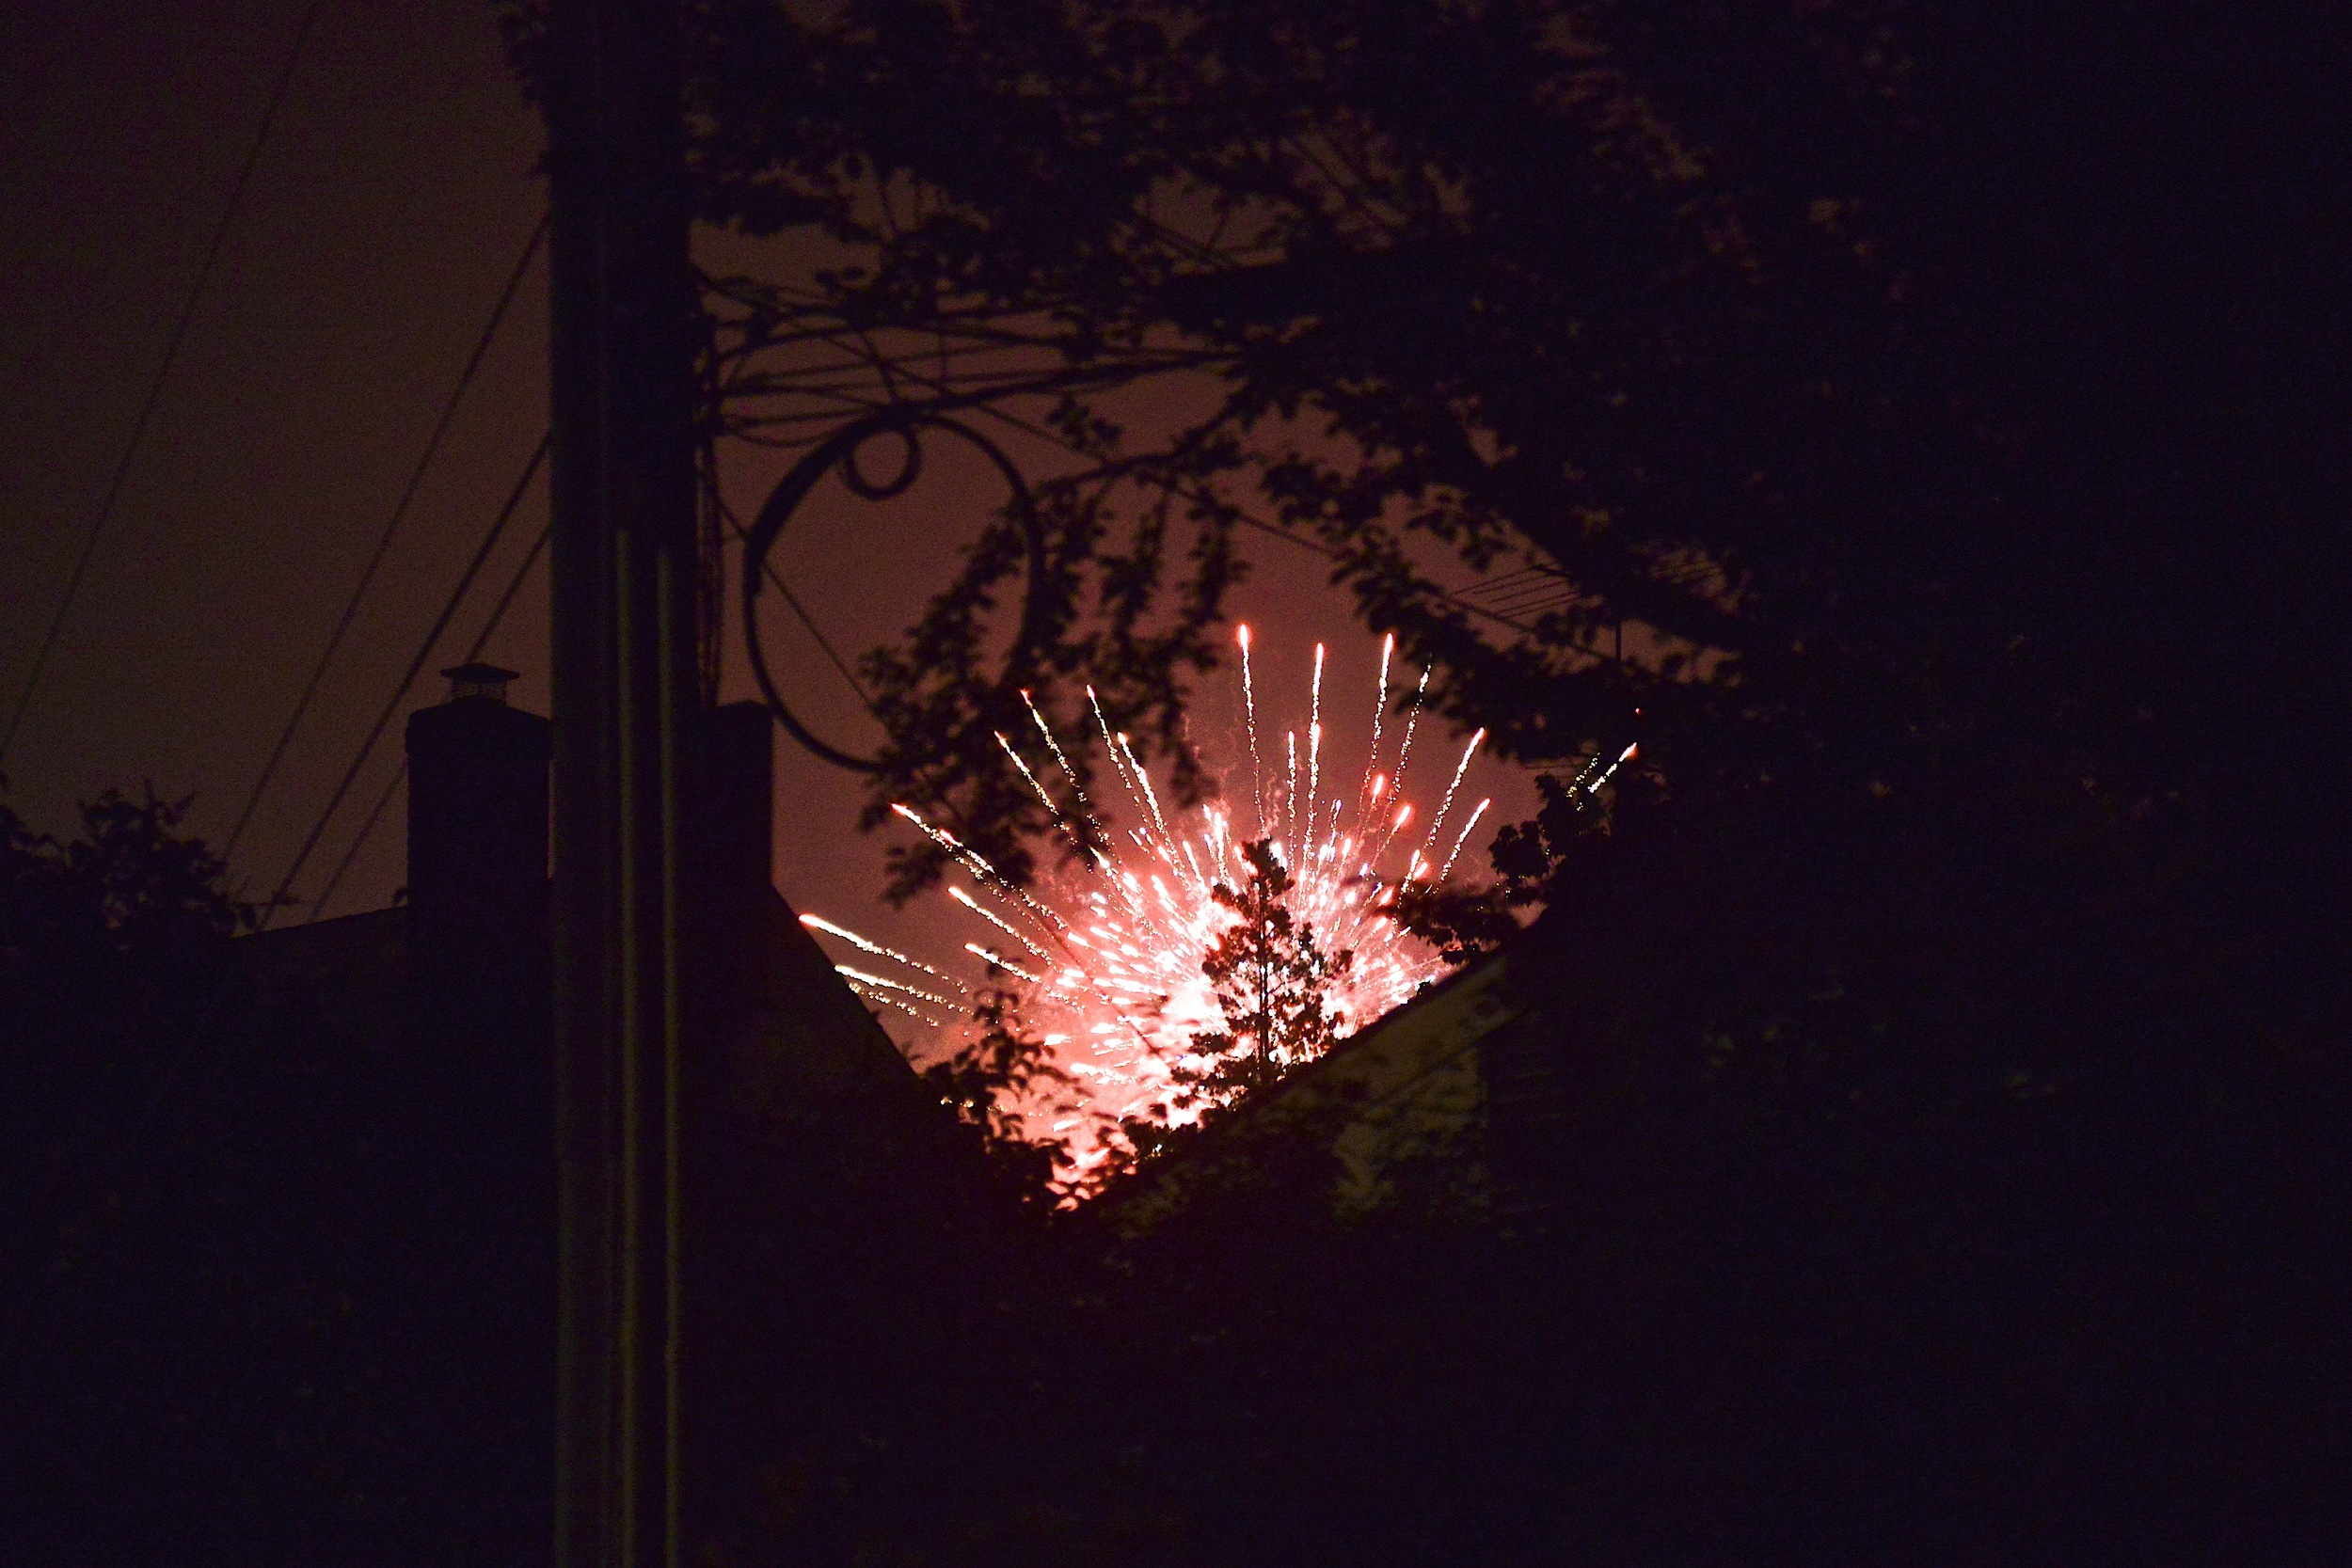 Watching fireworks in our backyard